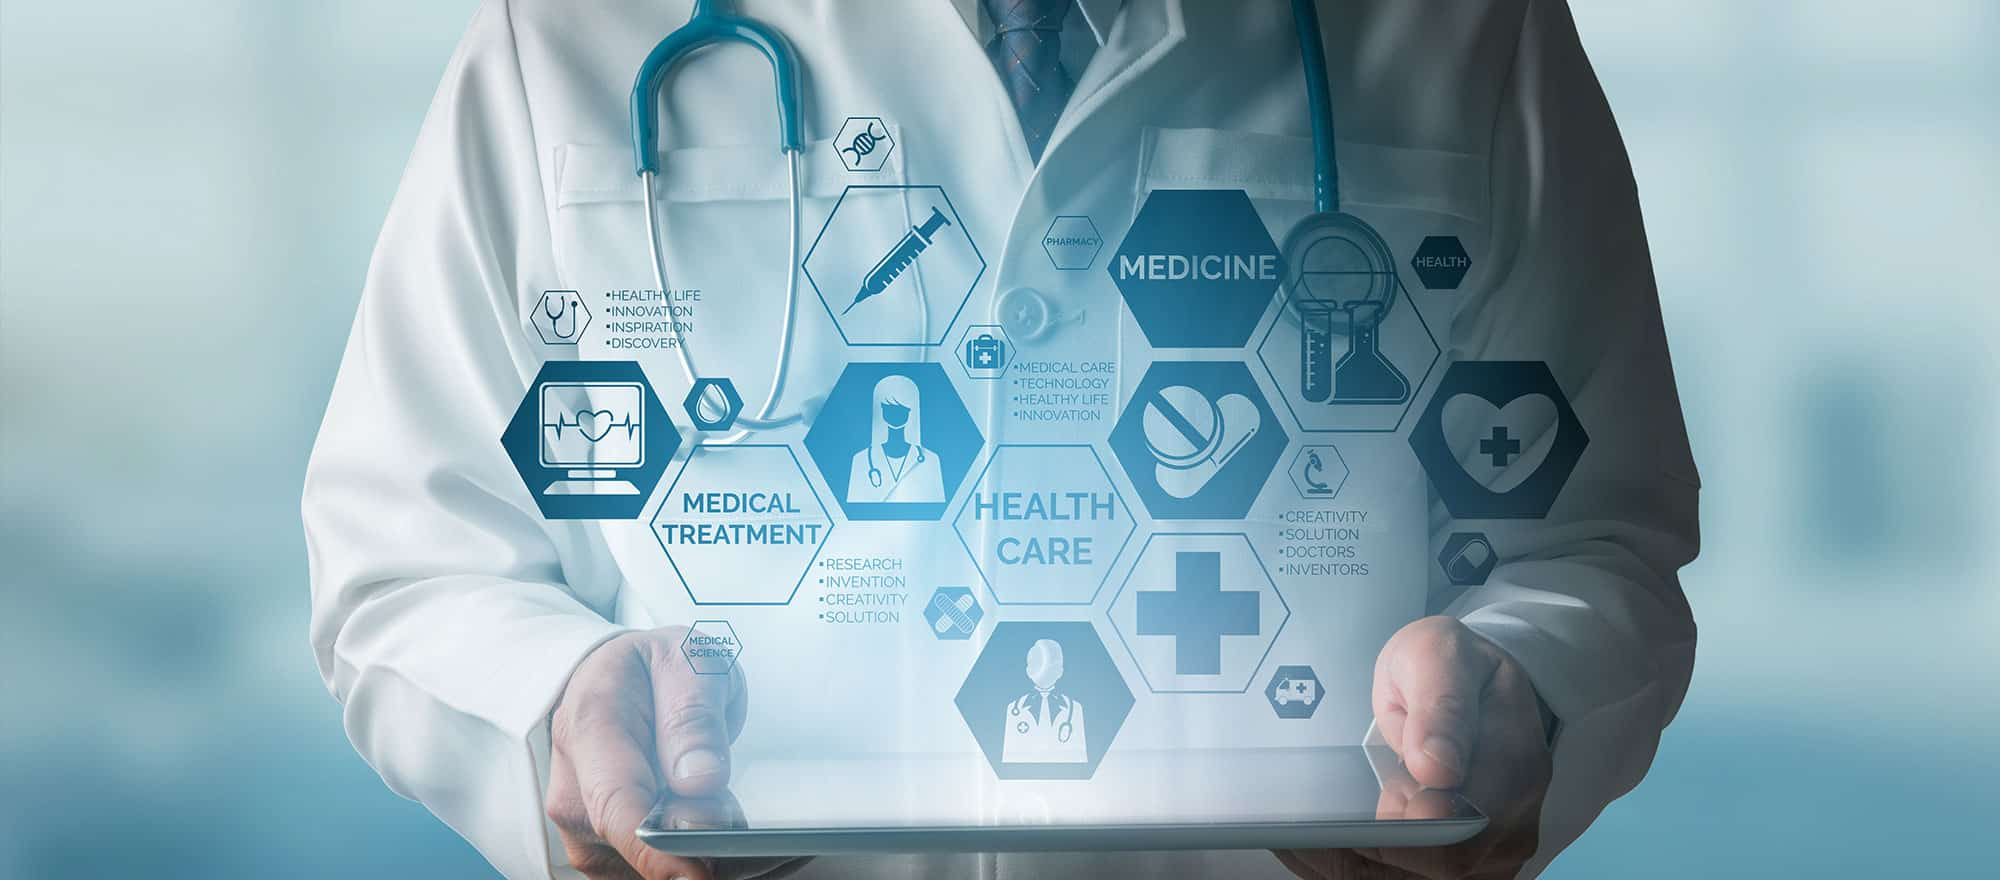 : iot applications in the medical field